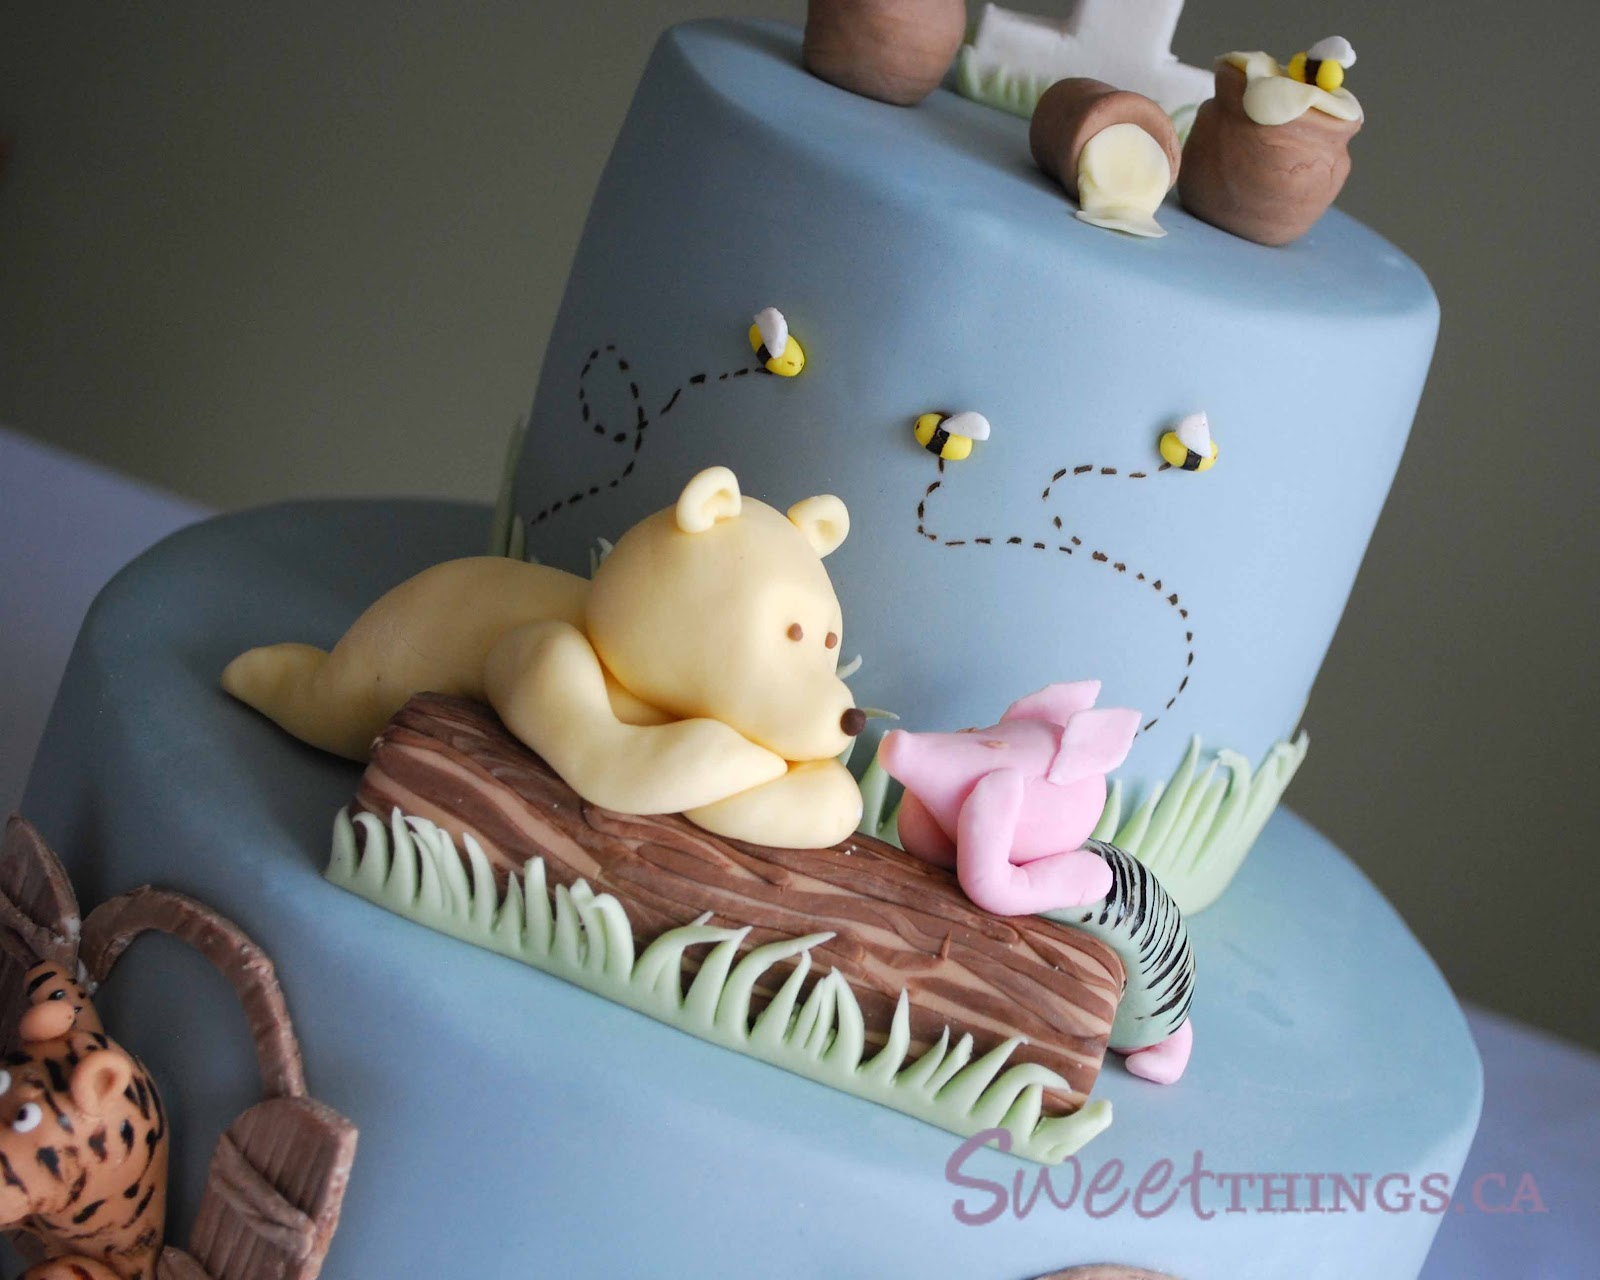 Cake Design Winnie The Pooh : SweetThings: 1st Birthday: Classic Winnie the Pooh Cake